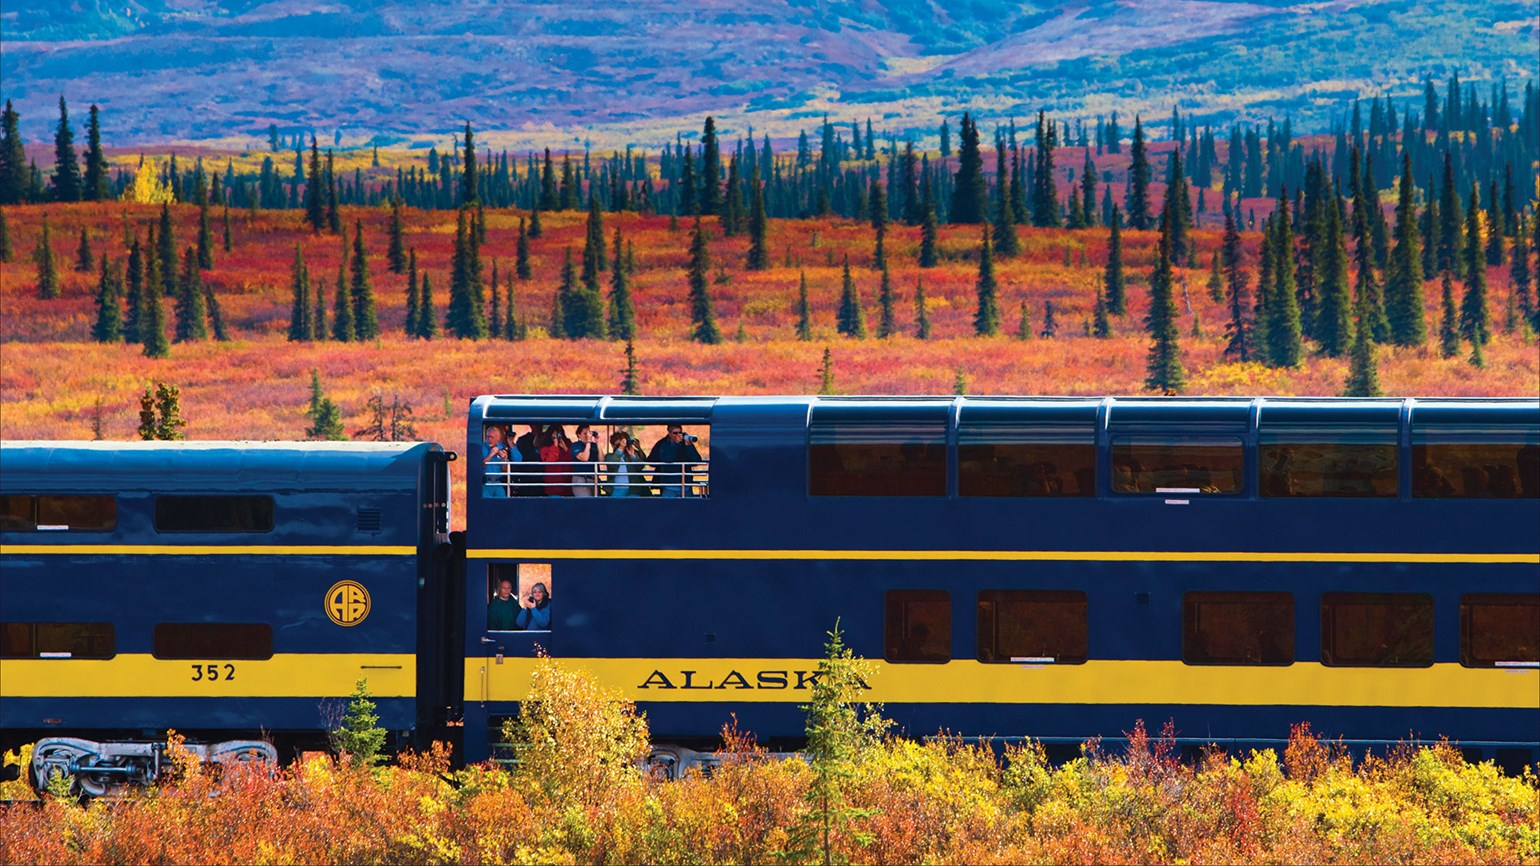 Alaska Railroad takes booking for fall event trains